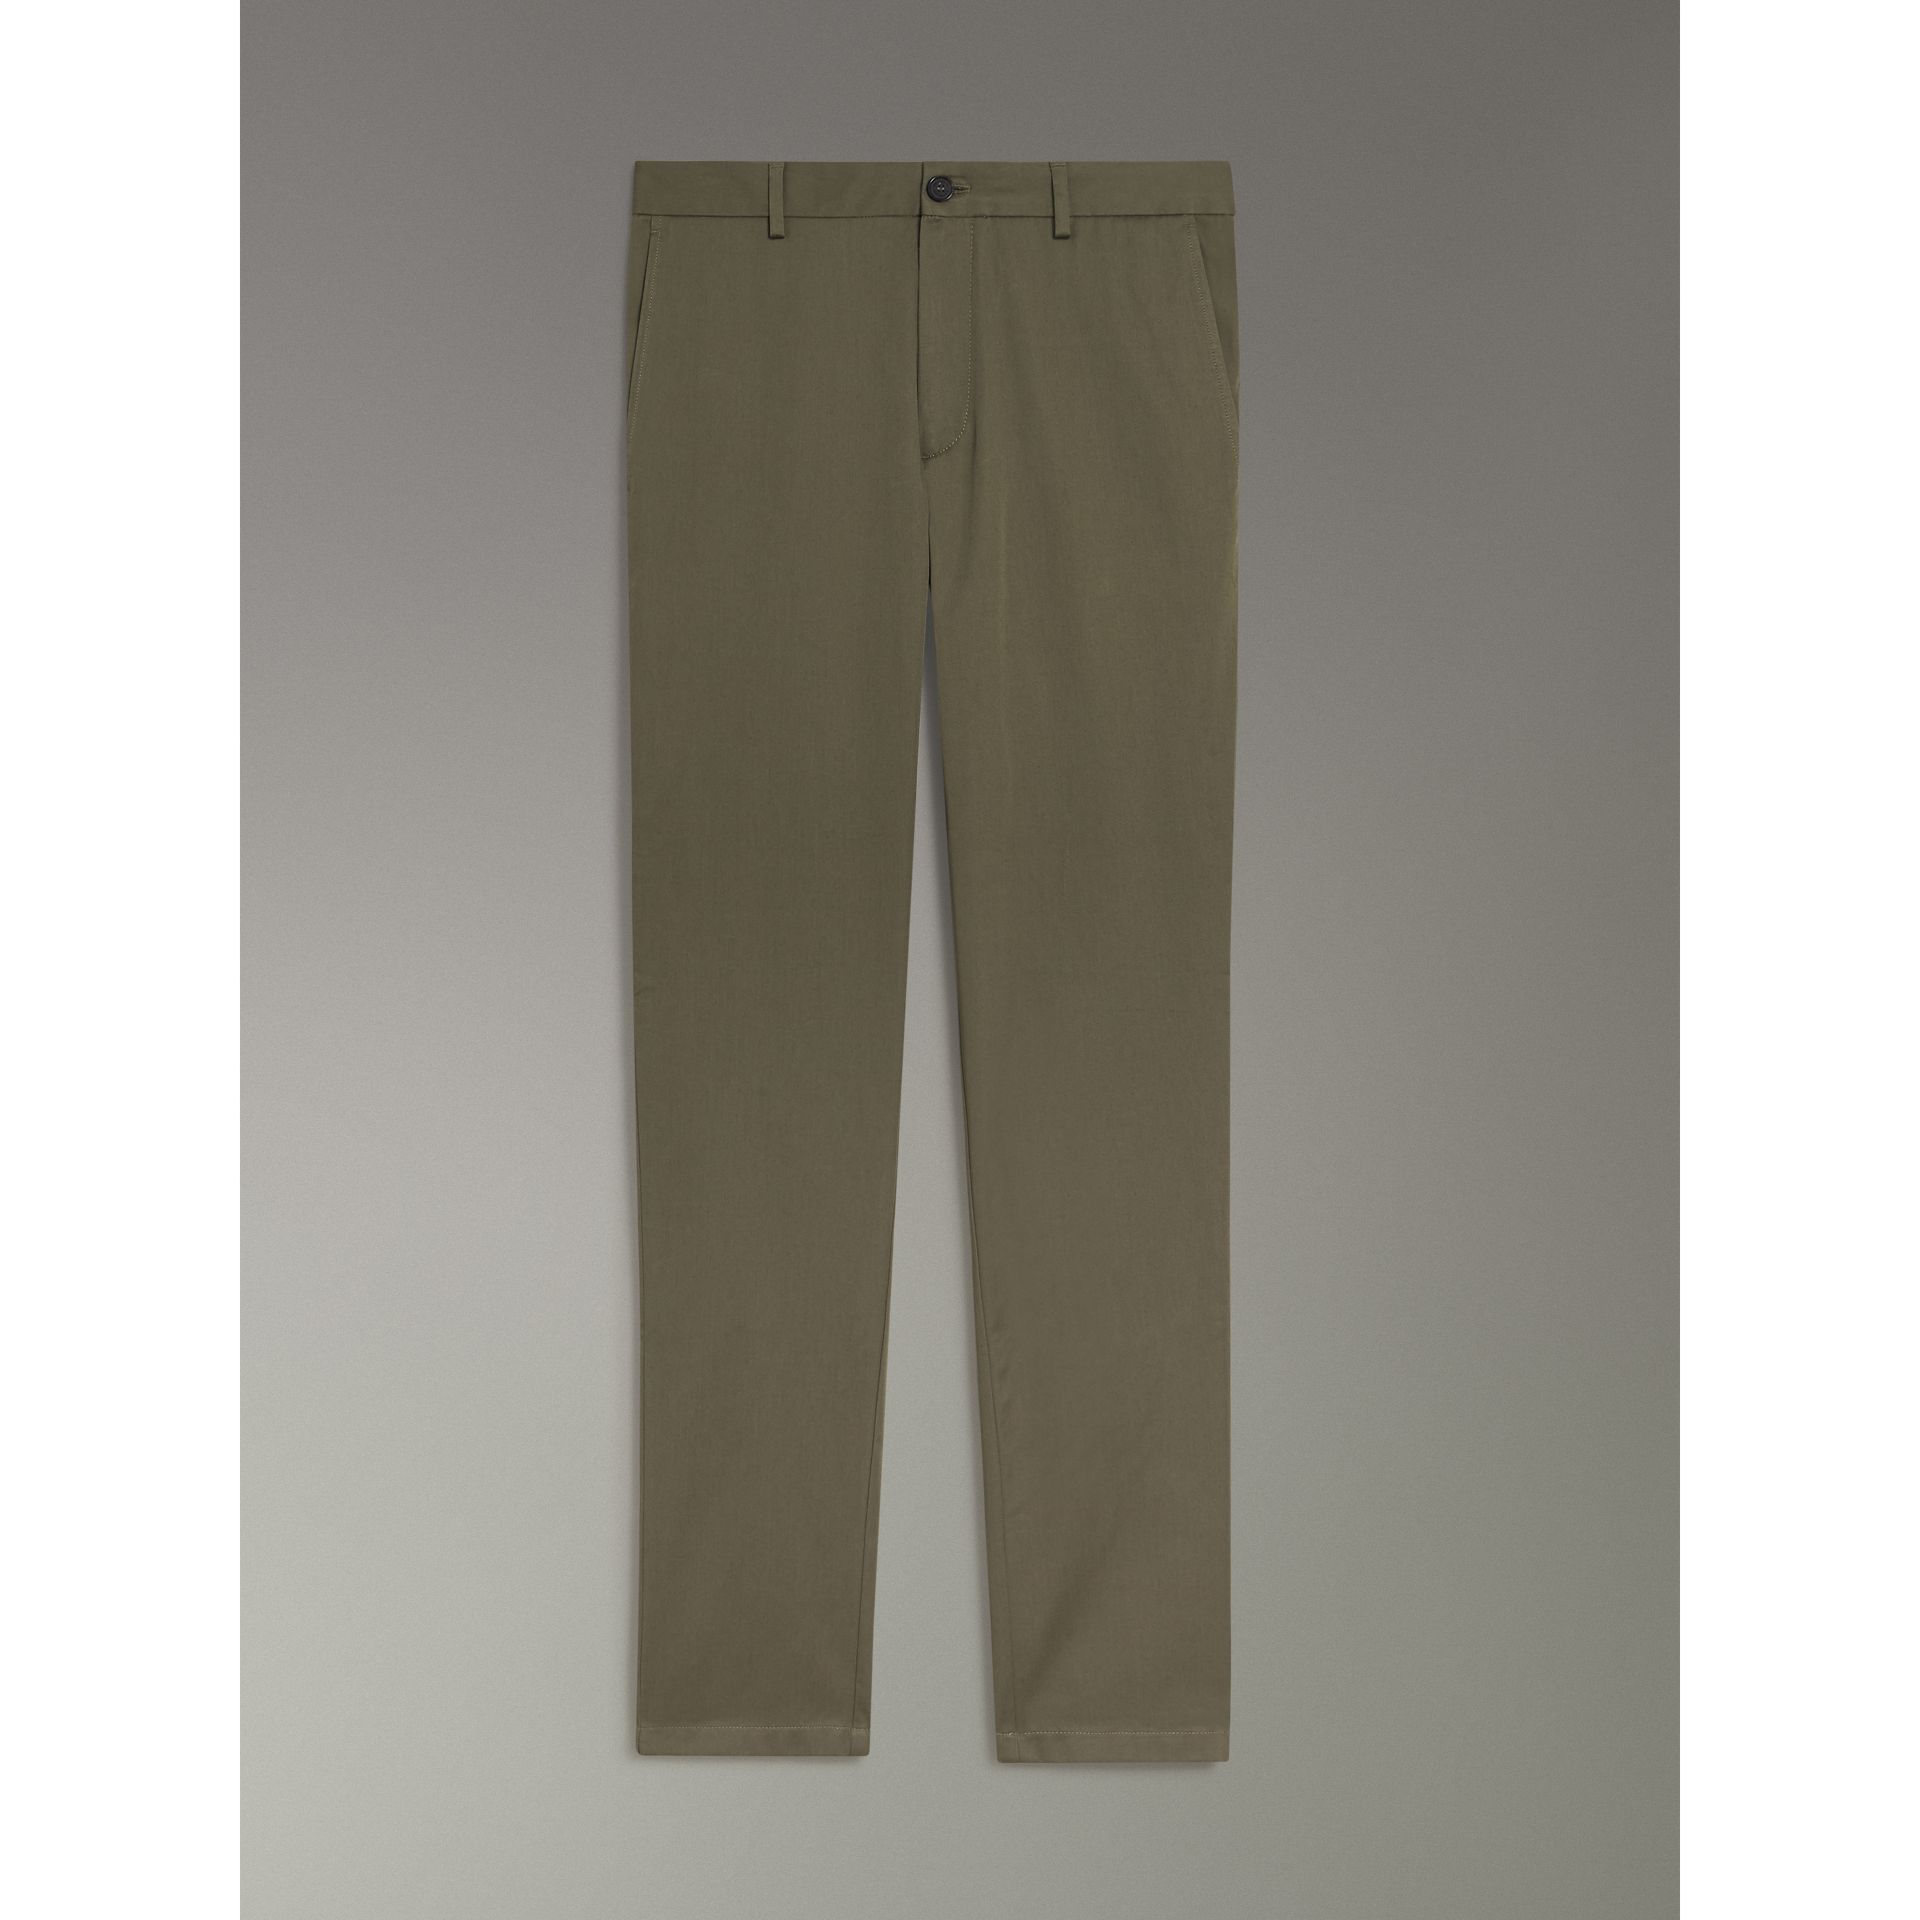 Slim Fit Cotton Chinos in Military Green - Men | Burberry - gallery image 3